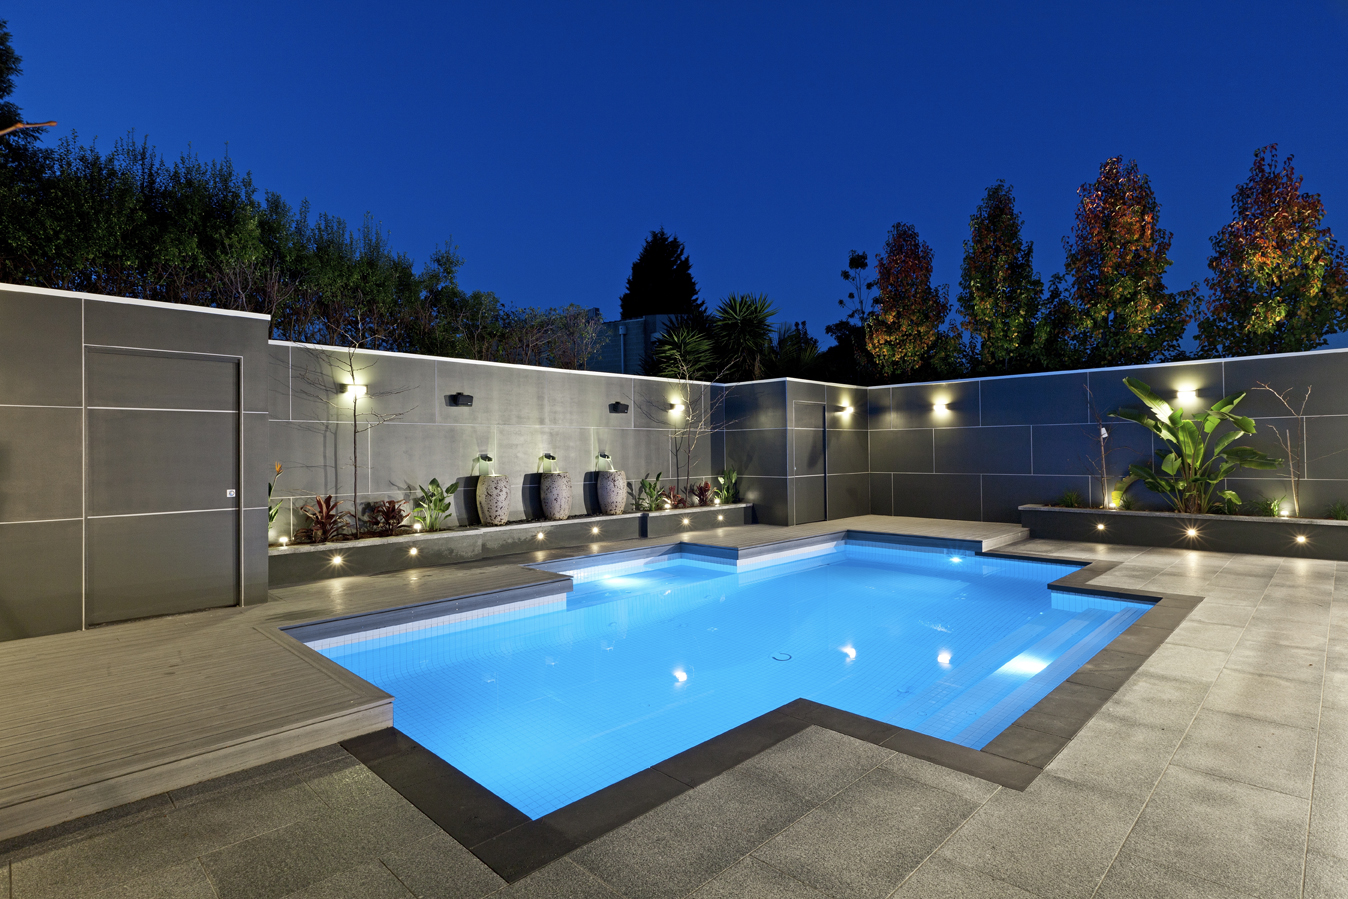 Backyard Pool Designs | Average Cost of A Small Inground Pool | Inground Pool Pictures